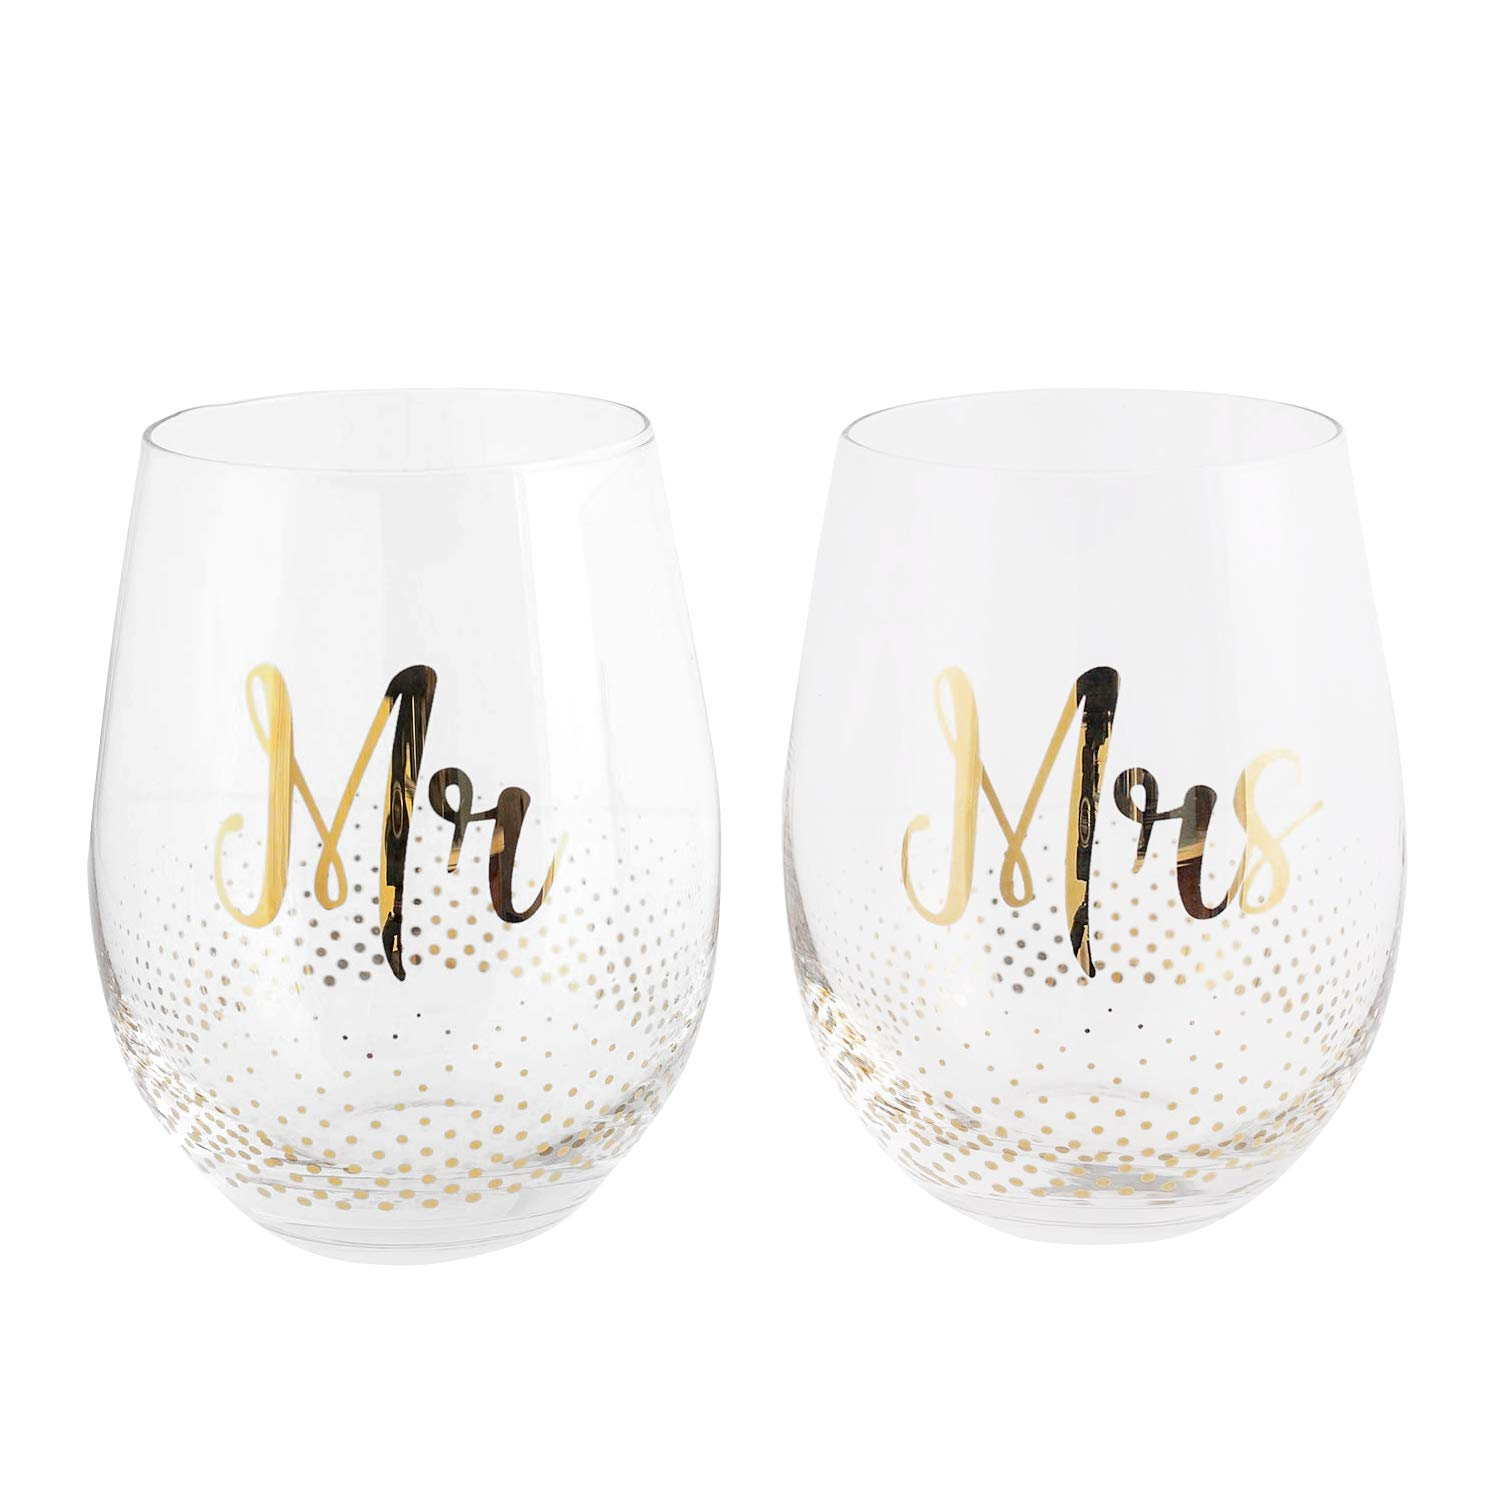 Mr & Mrs Gifts, set of 2 Crystal stemless wine glasses, with beautiful gift box, Perfect Engagement Gift, Wedding gift, Anniversary or Couples gift. by Verre Esprit (Image #10)